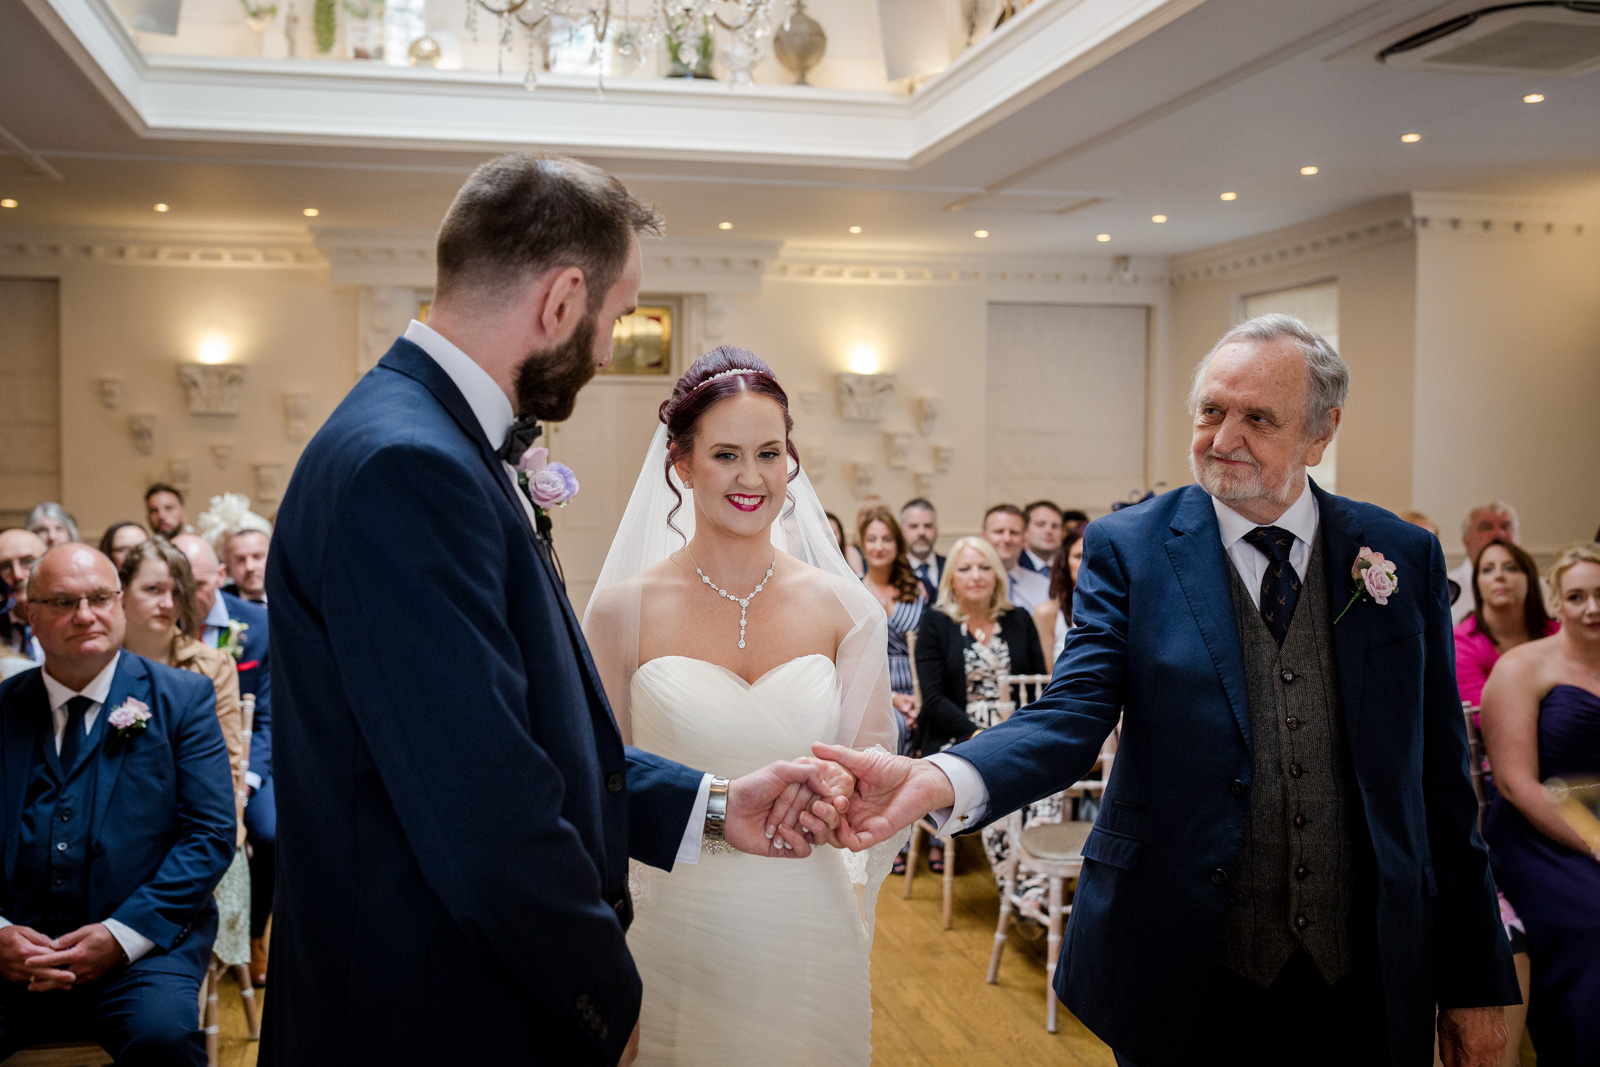 Guests at an Wedding Ceremony at an Ashfield House Wedding